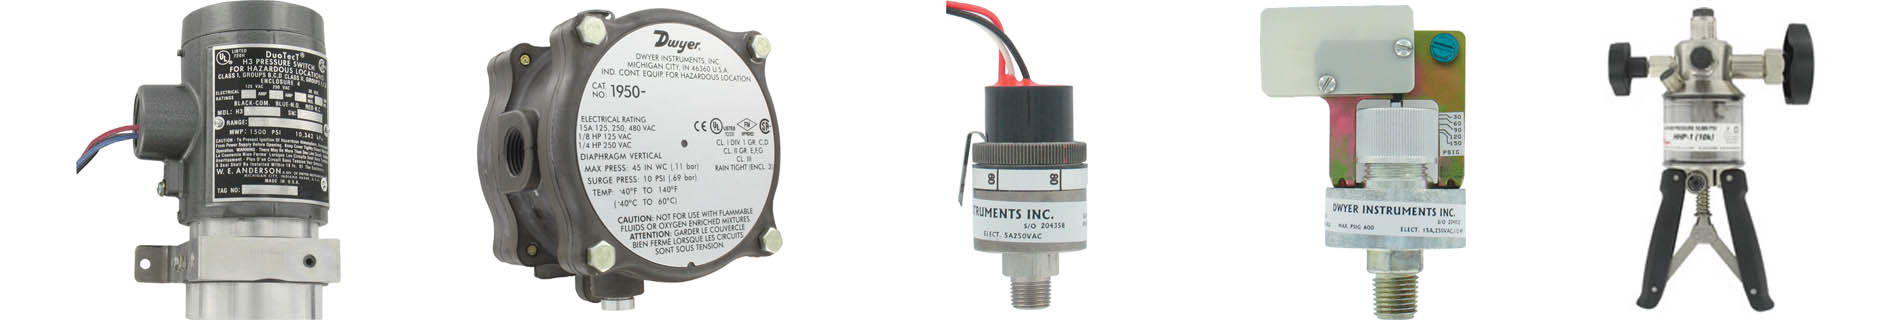 Pressure Switch Manufacturers | Pressure Switch Suppliers